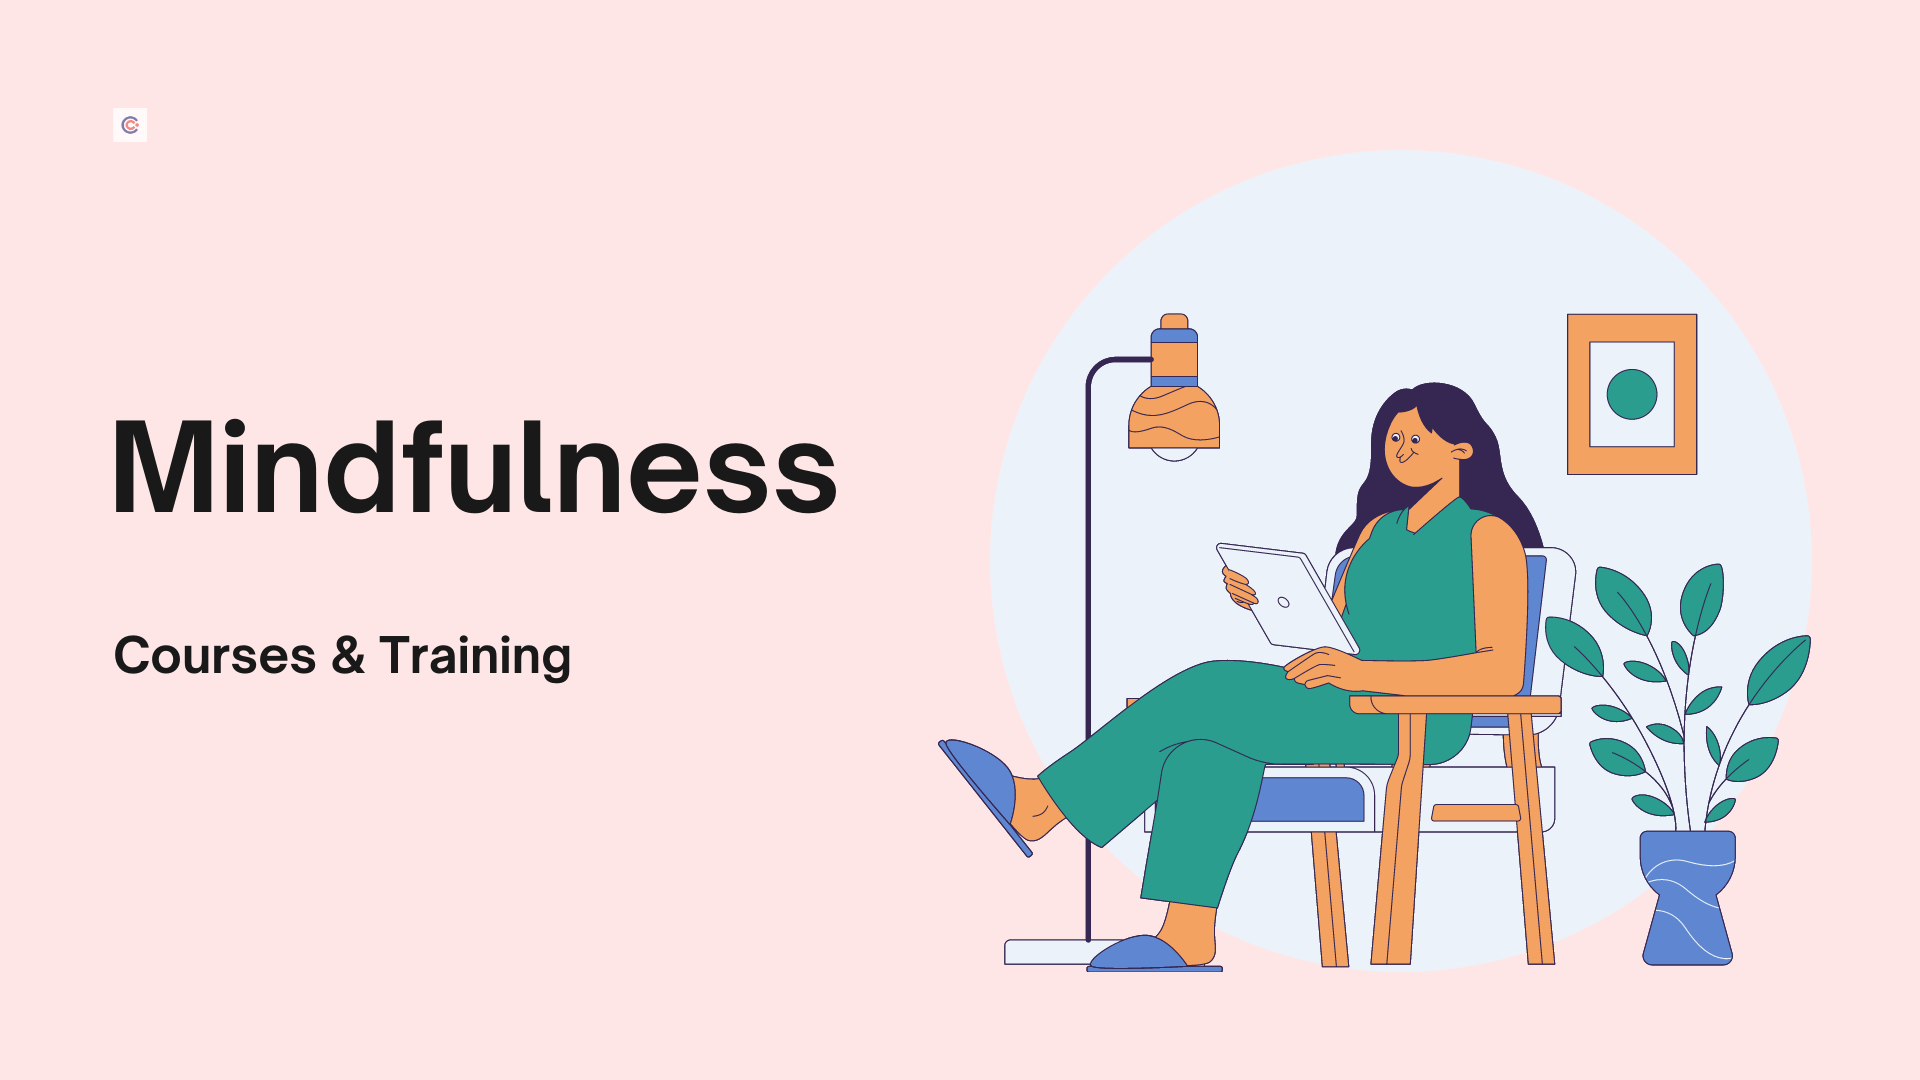 10 Best Mindfulness Courses & Training - Learn Mindfulness Online